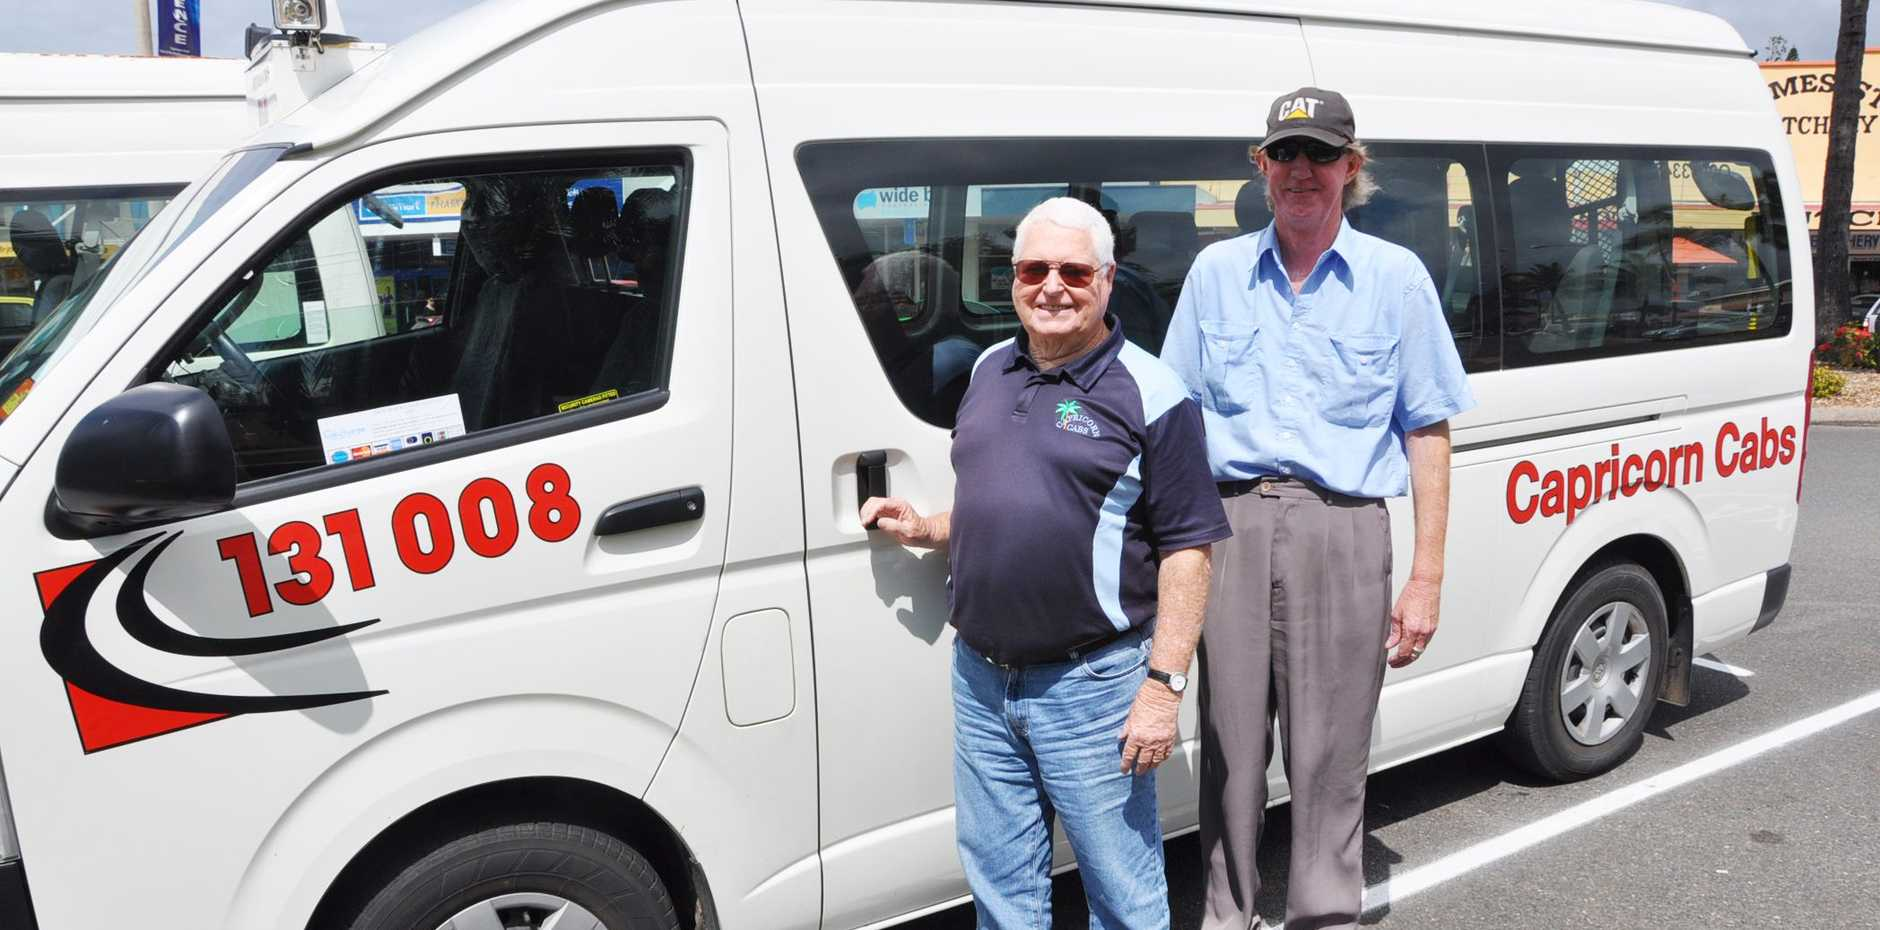 DONE DEAL: Capricorn Cabs' Barry McLauchlan and Ron Ware are happy to be improving taxi service on the Capricorn Coast.